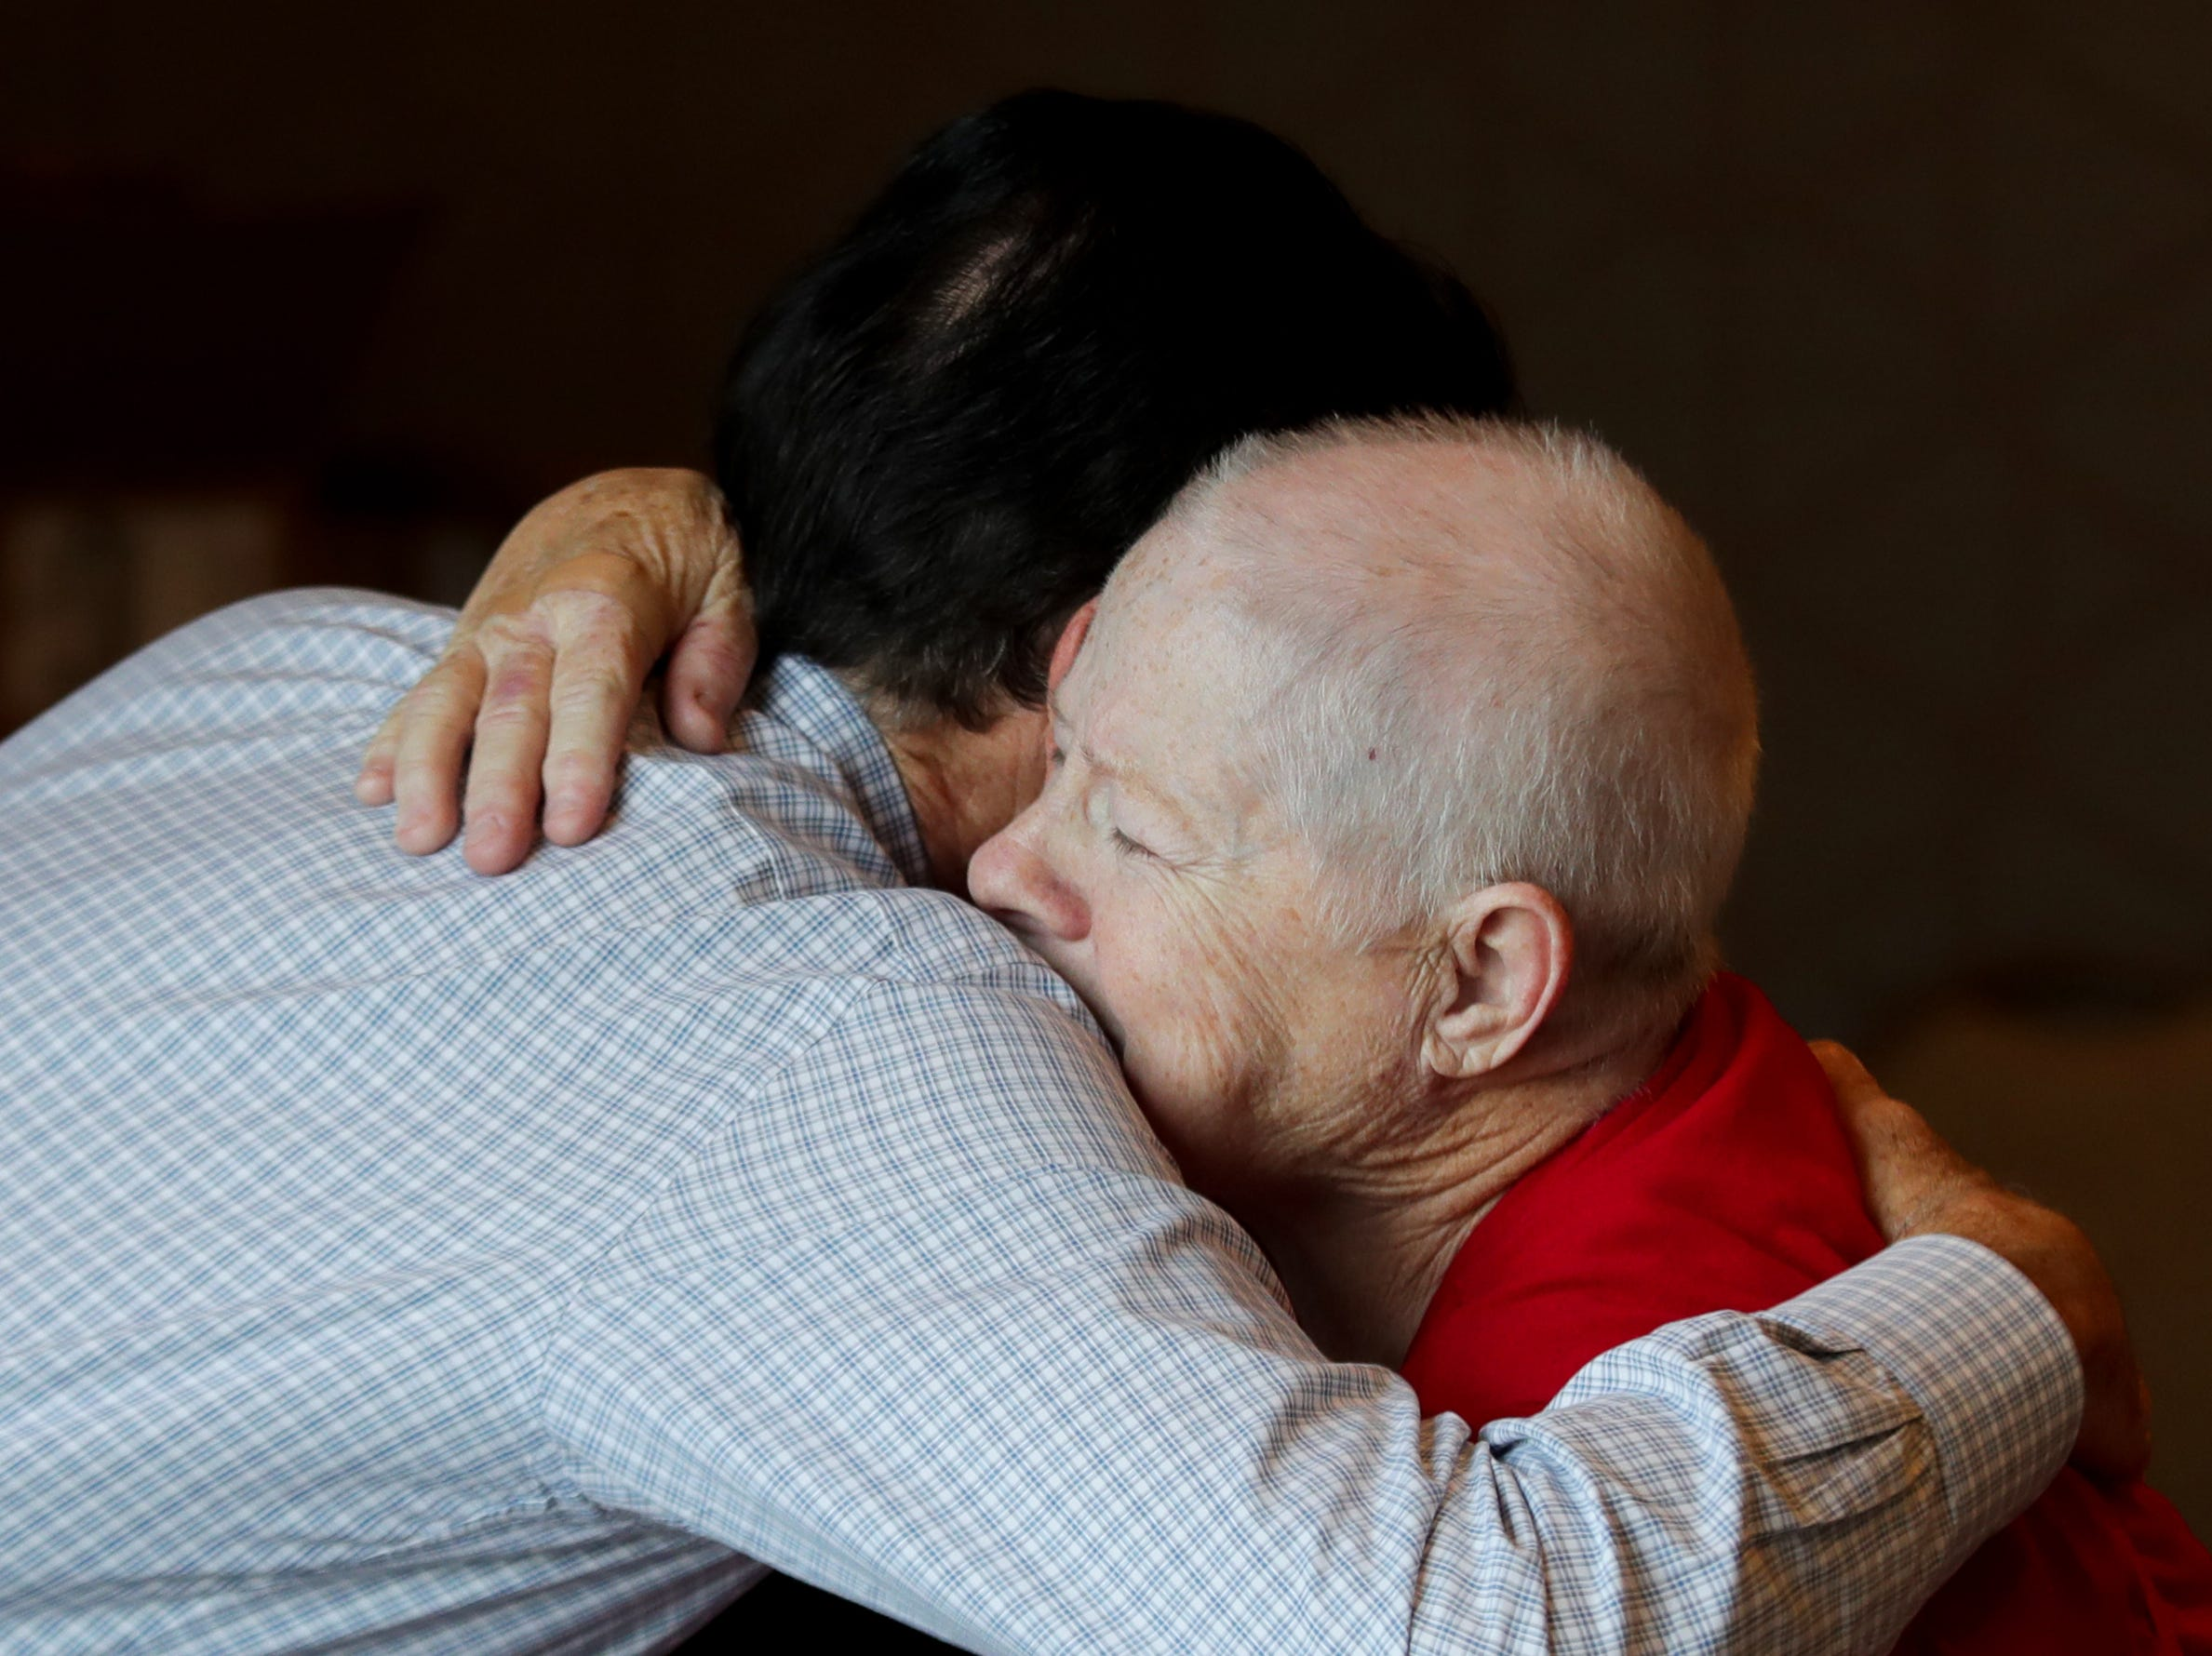 Pat Dixon got emotional as Rick Pitino stood up to give her a hug during his book signing at the Omni Hotel on Friday afternoon in Louisville, Kentucky.Sept. 14, 2018